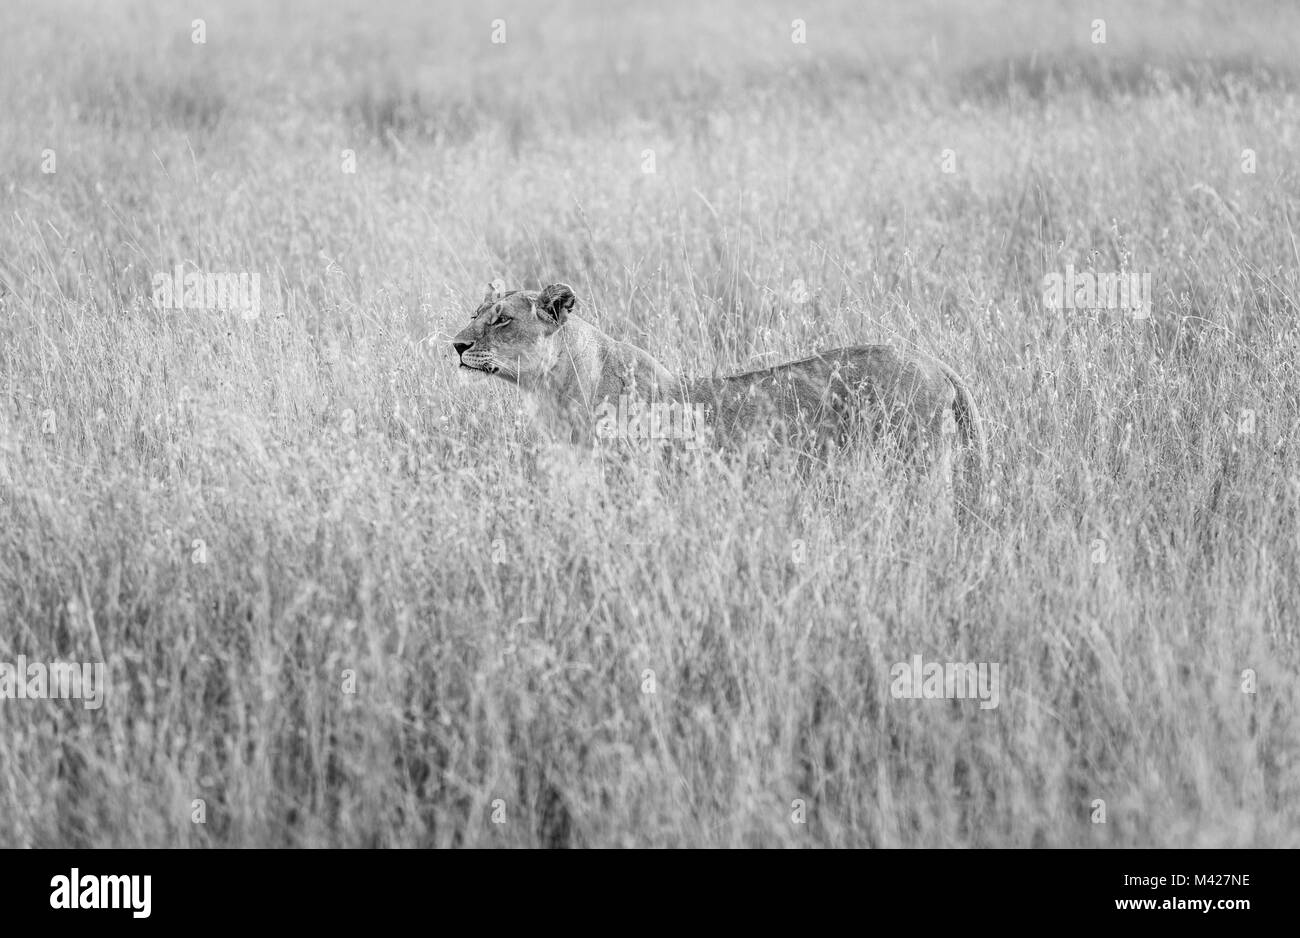 Big 5 predator: Stealthy watchful lioness (Panthera leo) stands partially concealed in long grass, alert and watchful Stock Photo